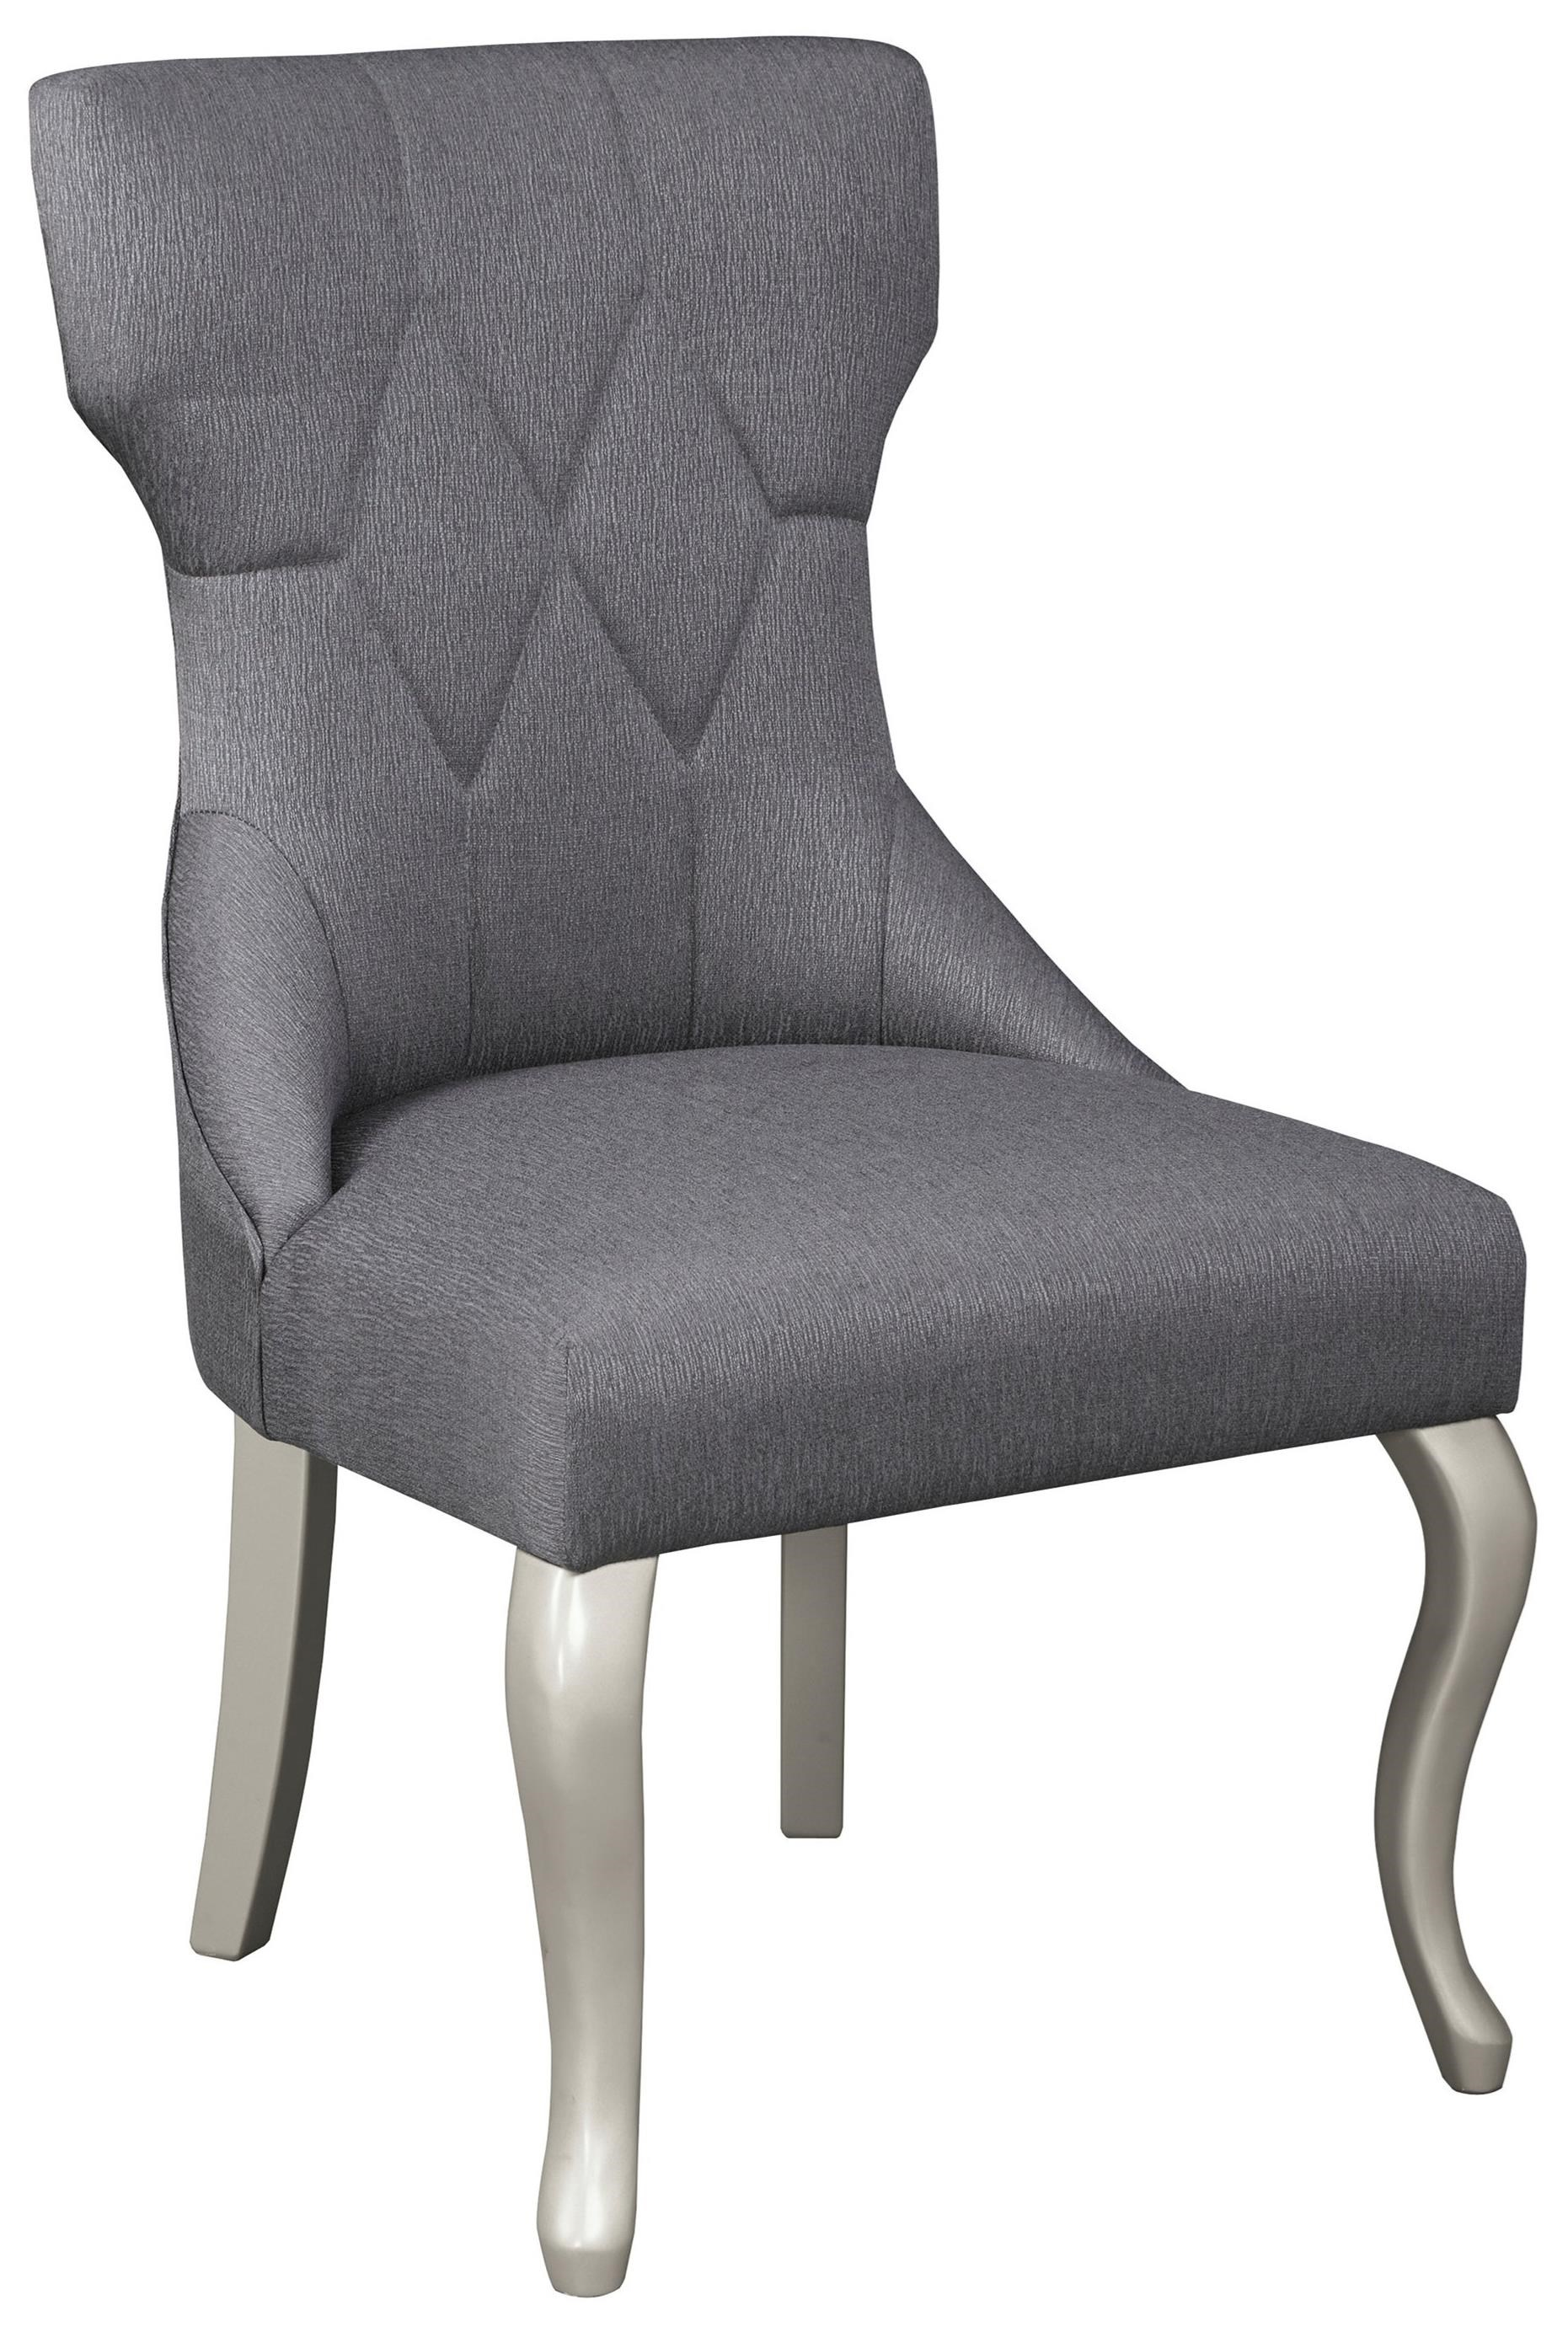 Signature Design by Ashley Coralayne Dining Upholstered Side Chair - Item Number: D650-01